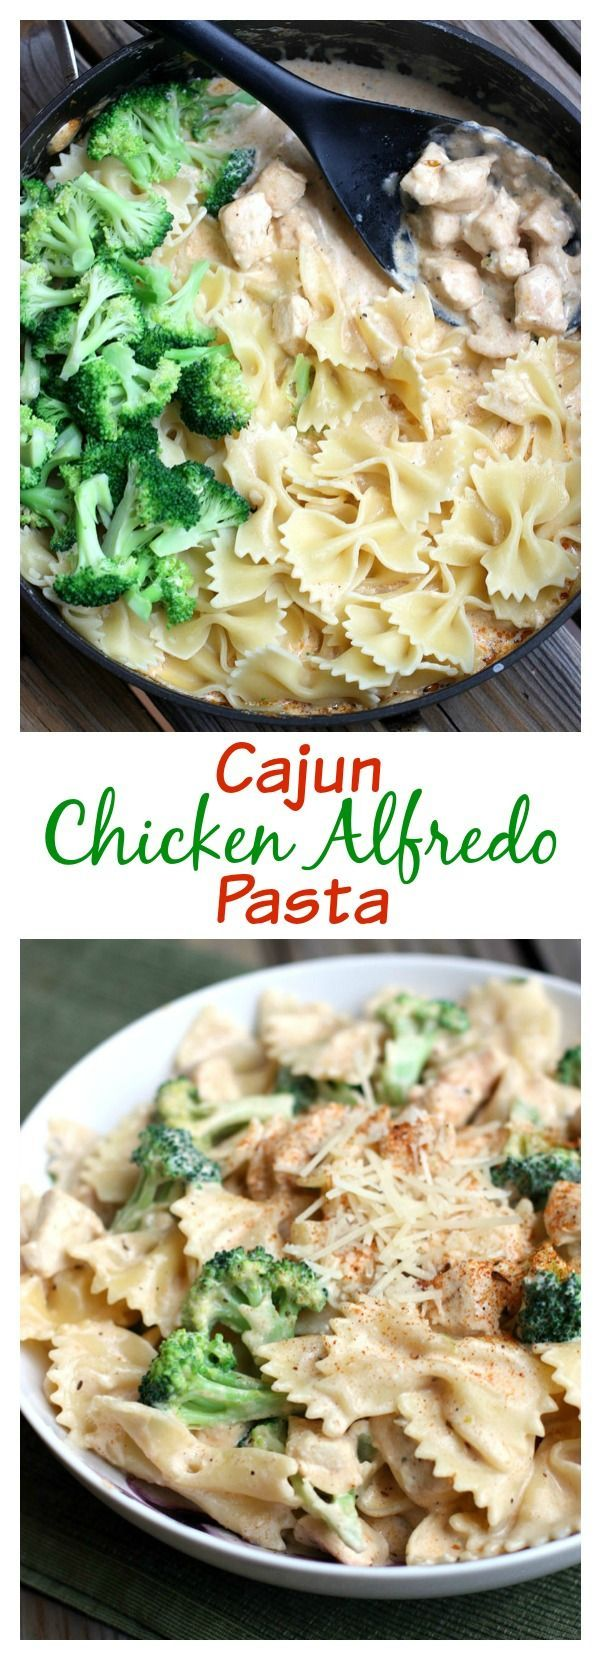 Cajun Chicken Alfredo Pasta makes the easiest 30-minute weeknight meal! Recipe on TastesBetterFromScratch.com